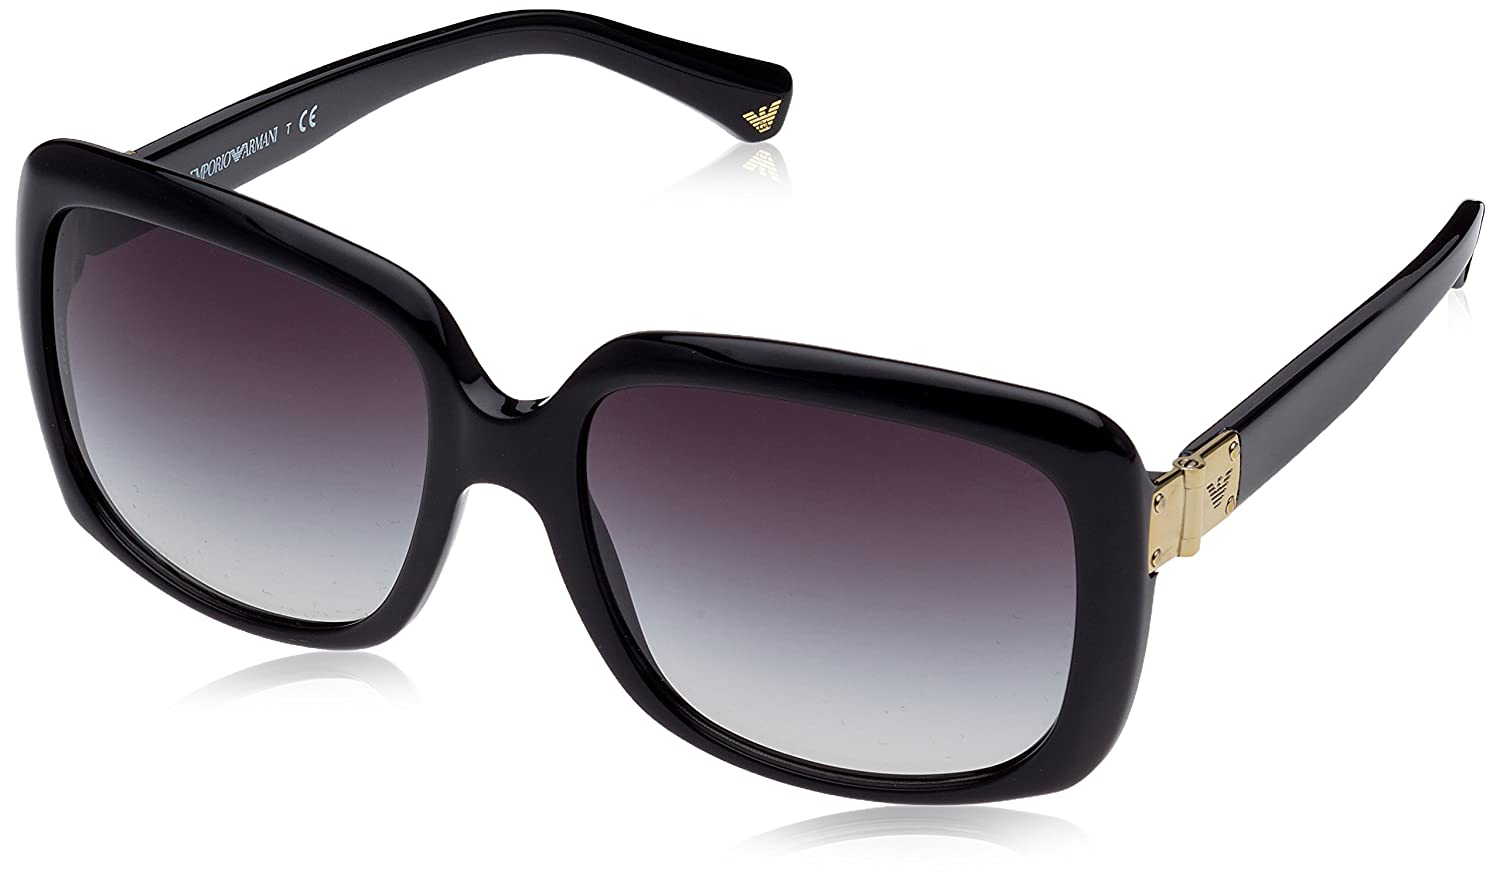 women's sunglasses sale ohak  hot sale Emporio Armani EA 4008 Women's Sunglasses